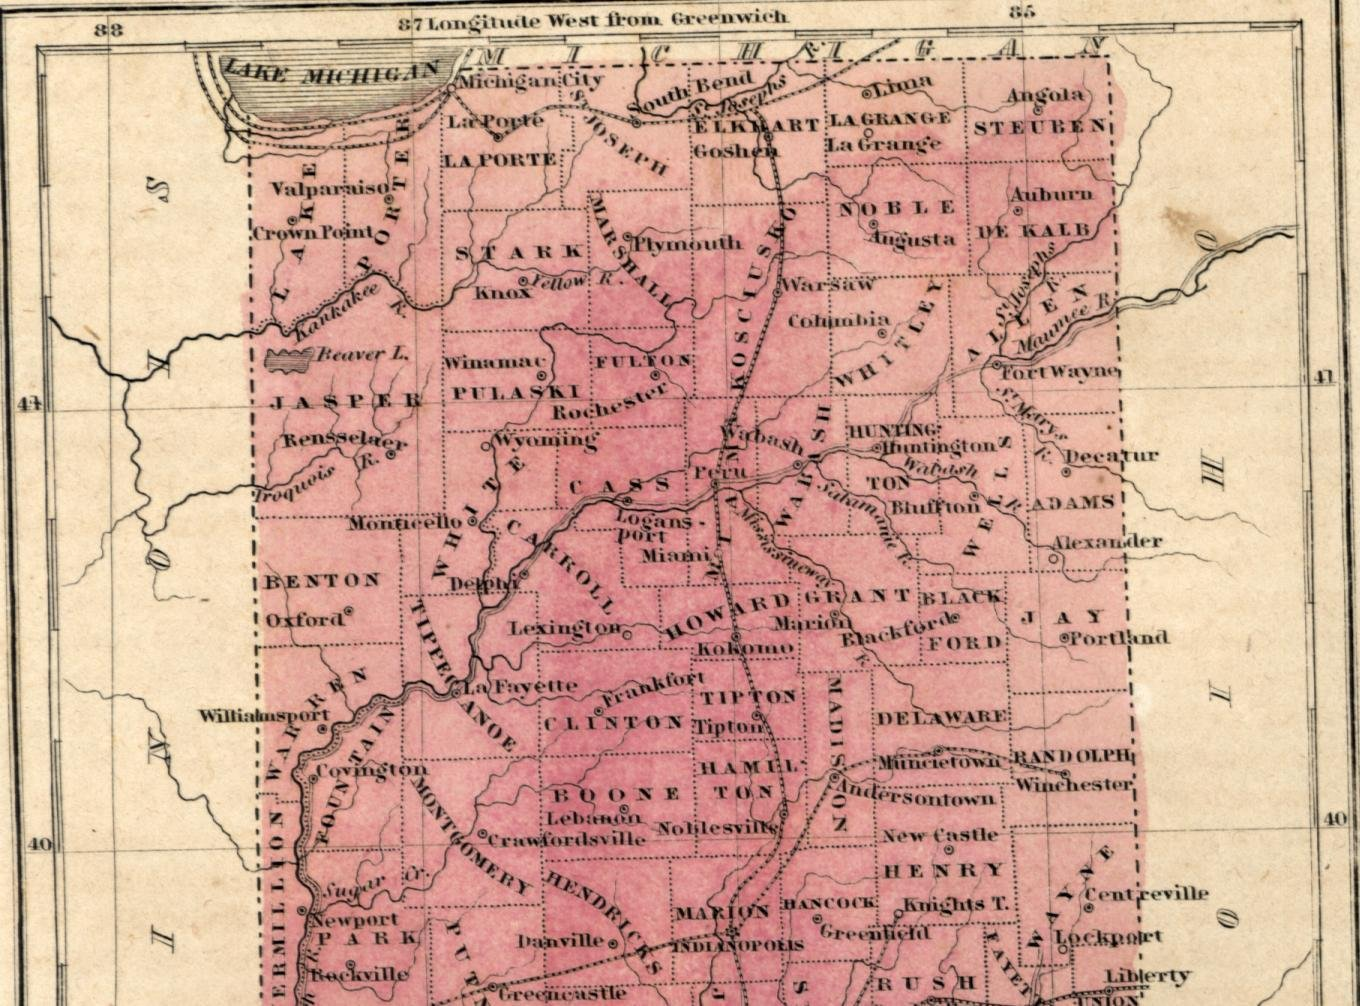 Indiana State Map With Cities And Towns.Amazon Com Indiana Counties Towns Roads Indianapolis 1856 Boynton